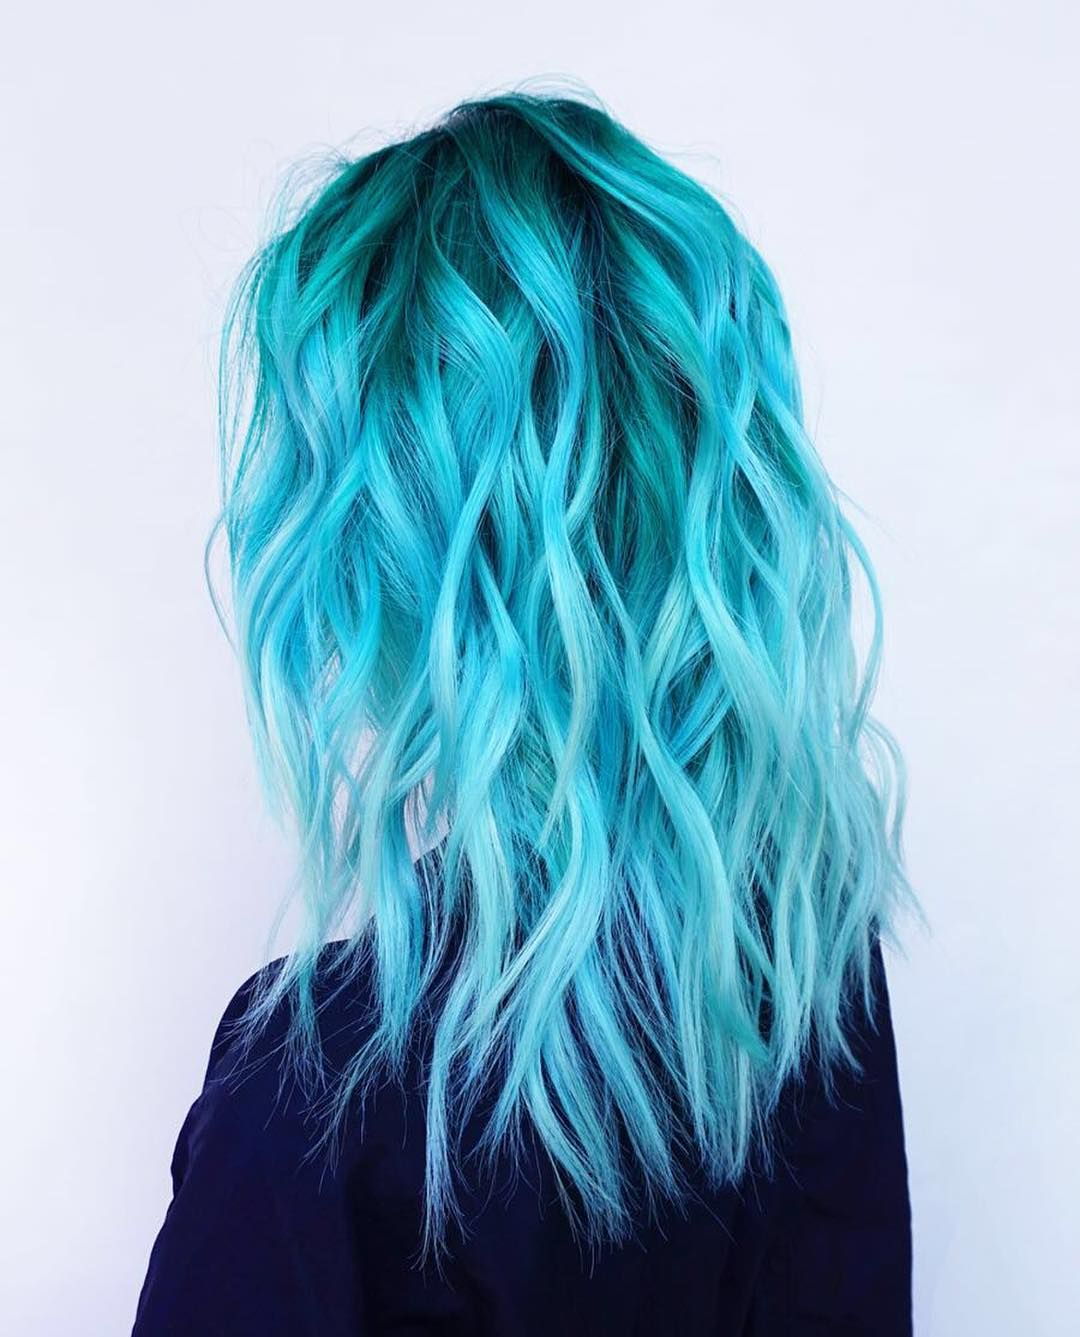 Nice 75 Mesmerizing Ideas On Pretty Hair Colors Making Your Hairstyle A Top Tier Hair Styles Pretty Hair Color Pretty Hairstyles